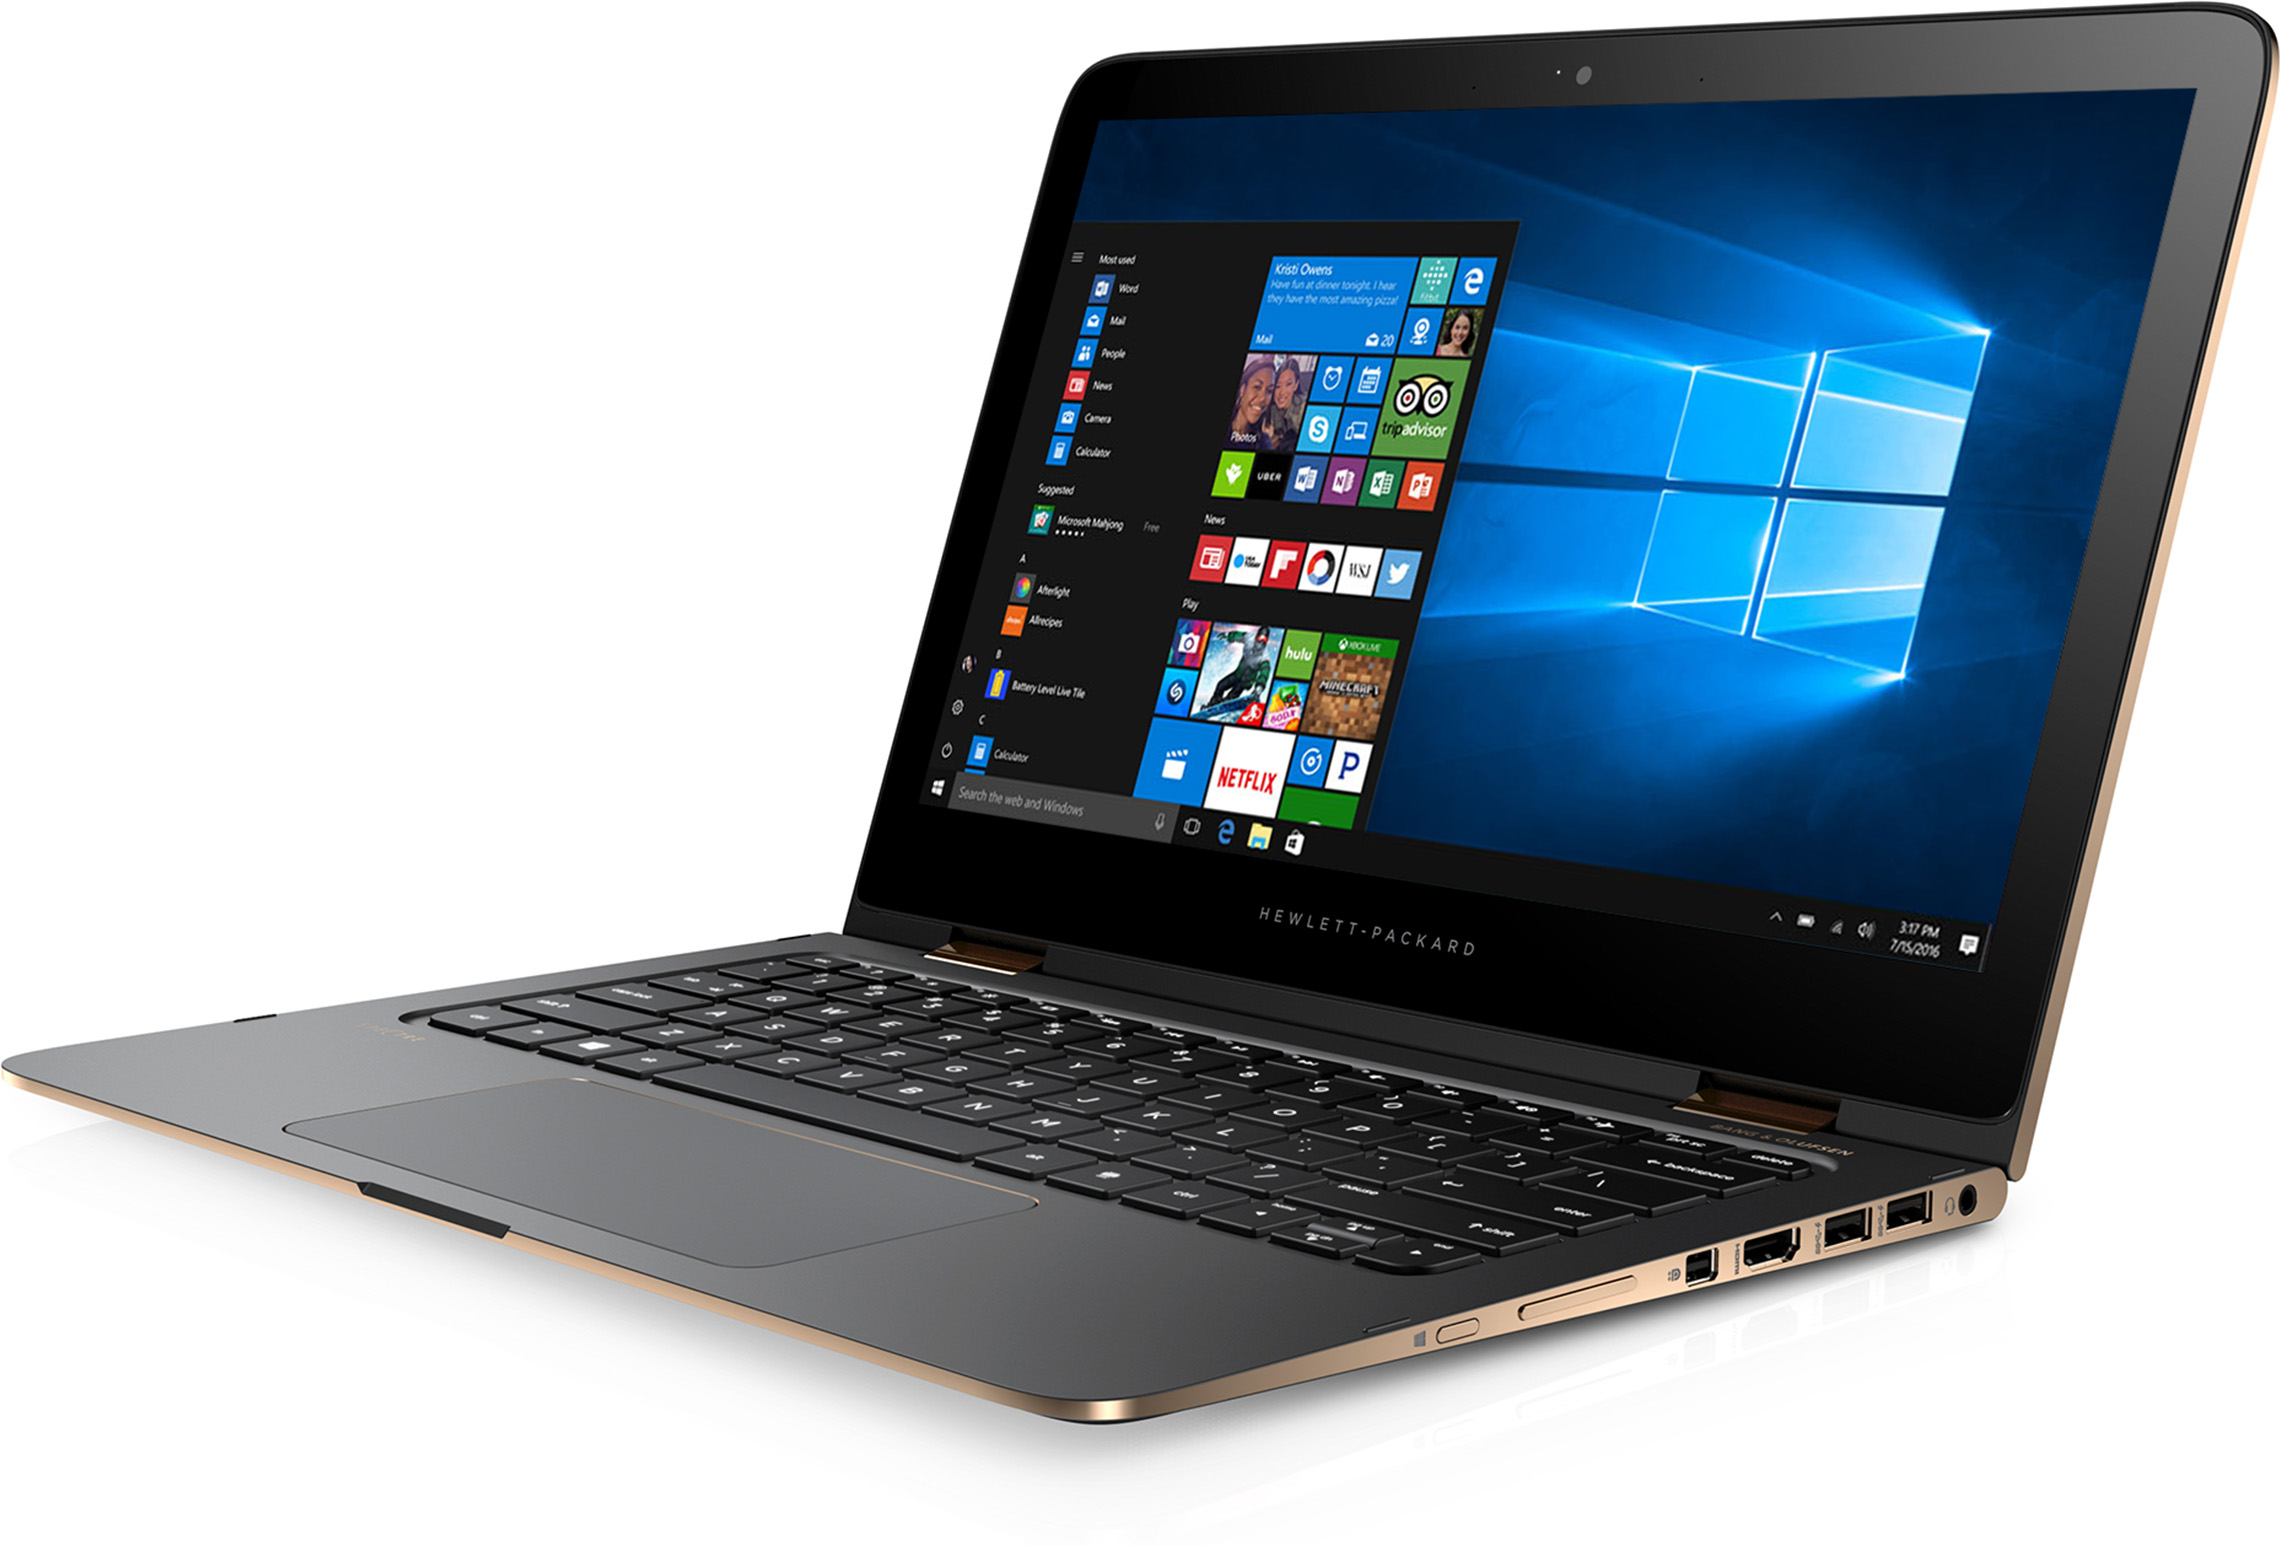 HP Spectre x360 Convertible 13-4197ms Signature Edition 2 in 1 PC